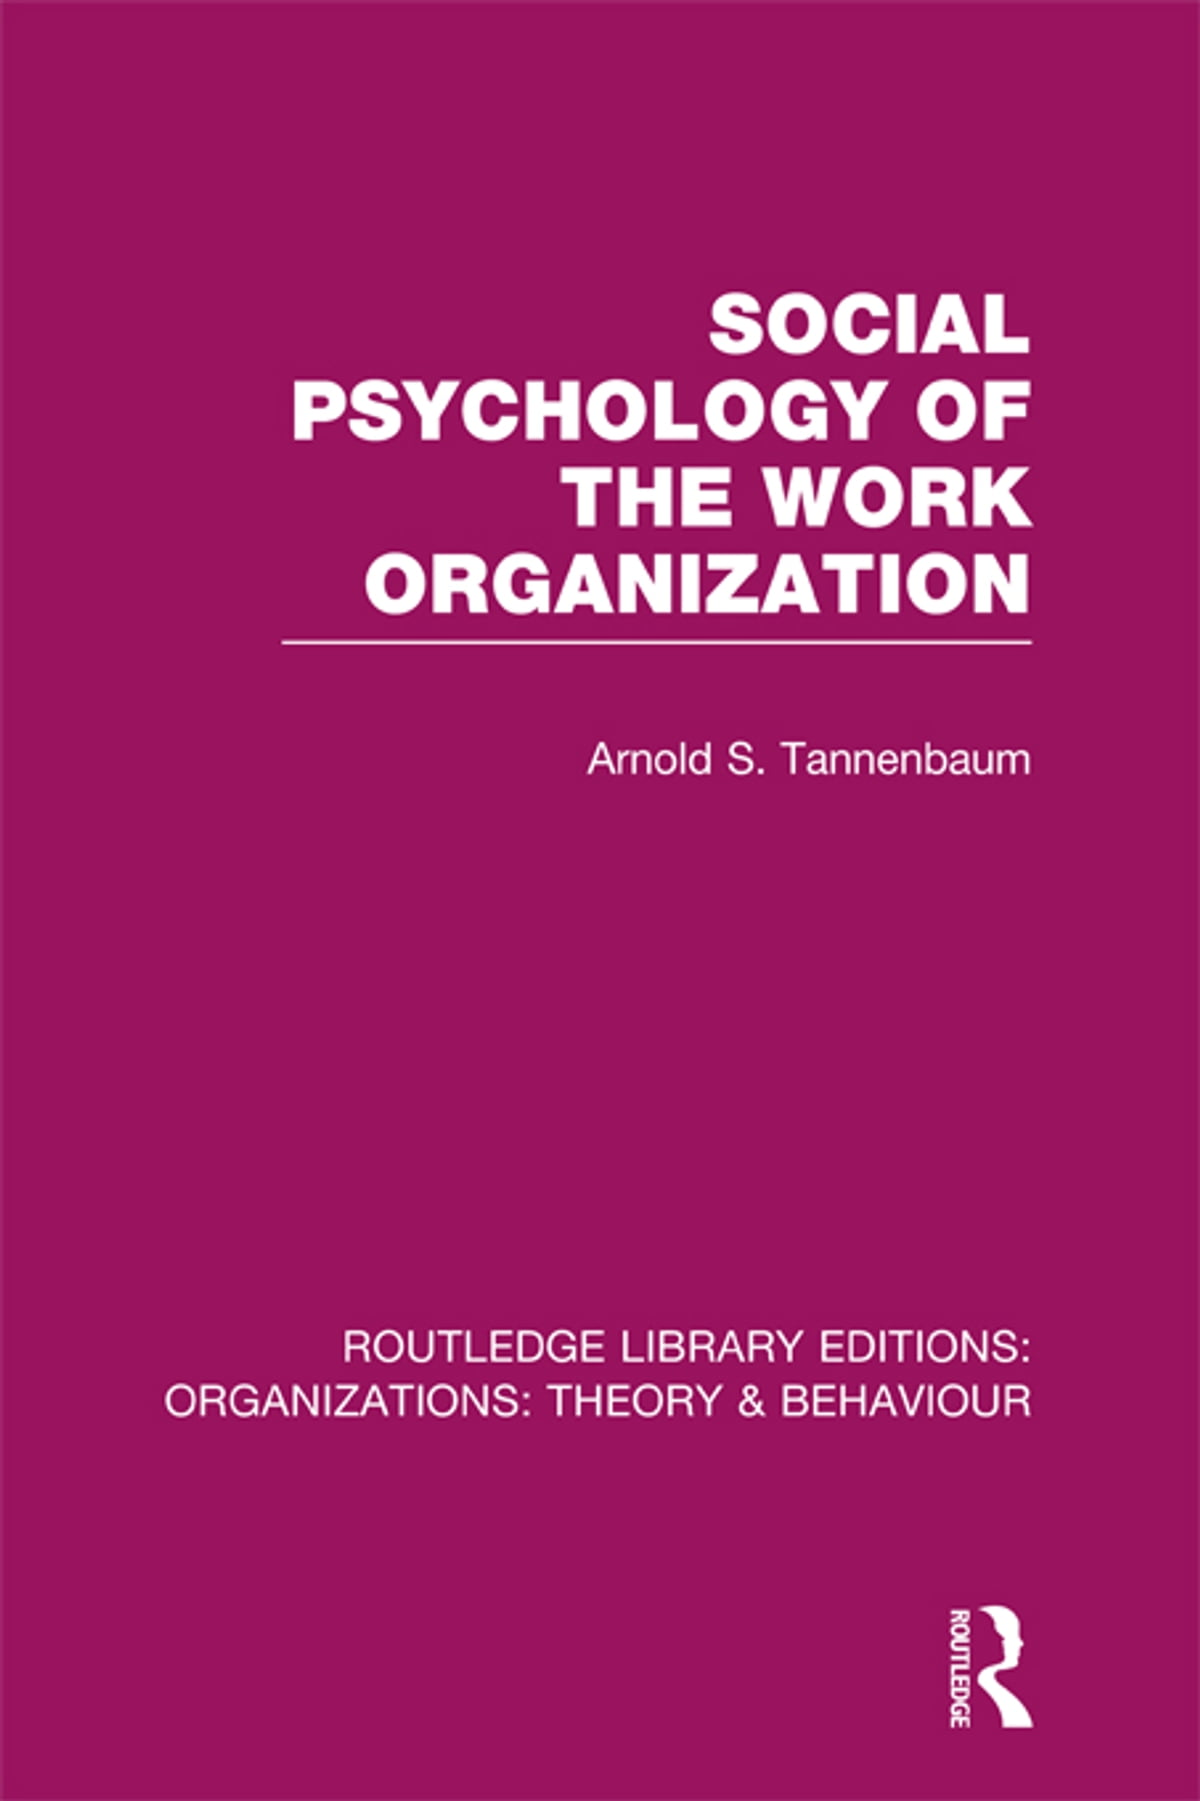 Social psychology of the work organization rle organizations social psychology of the work organization rle organizations ebook by arnold tannenbaum 9781135985301 rakuten kobo fandeluxe Image collections